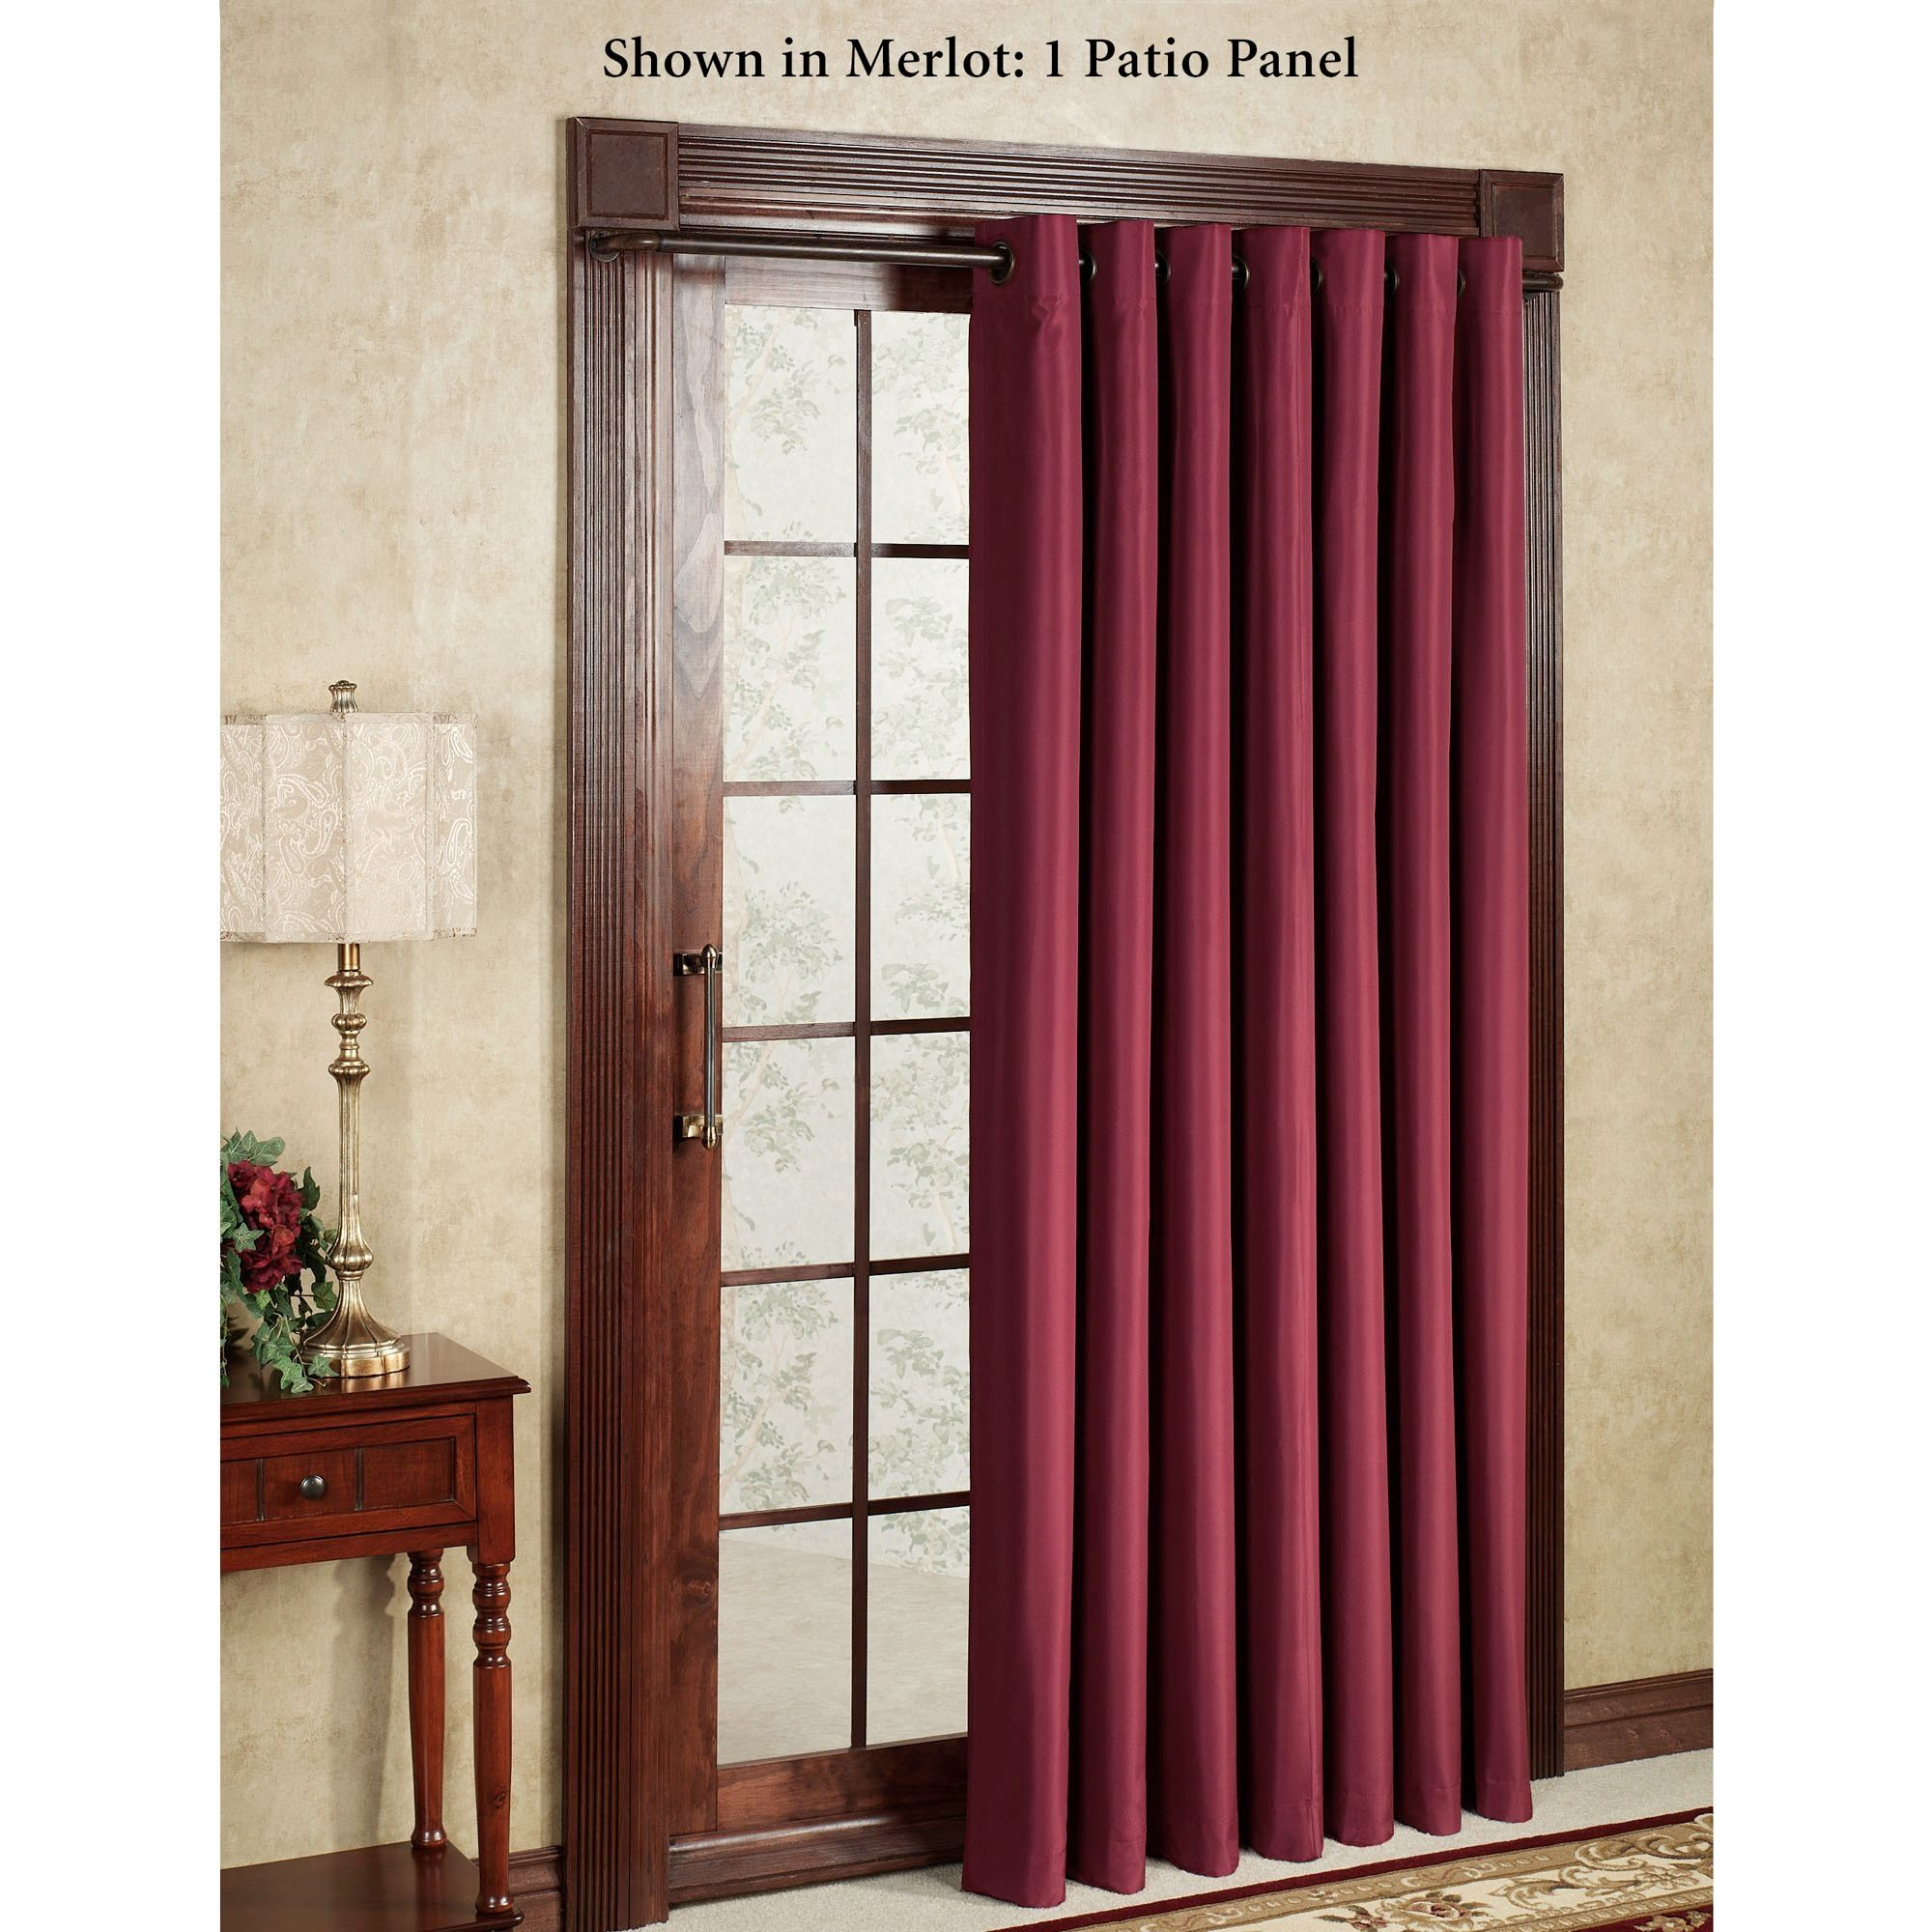 Thermal Lined Curtains For Sliding Glass Doors